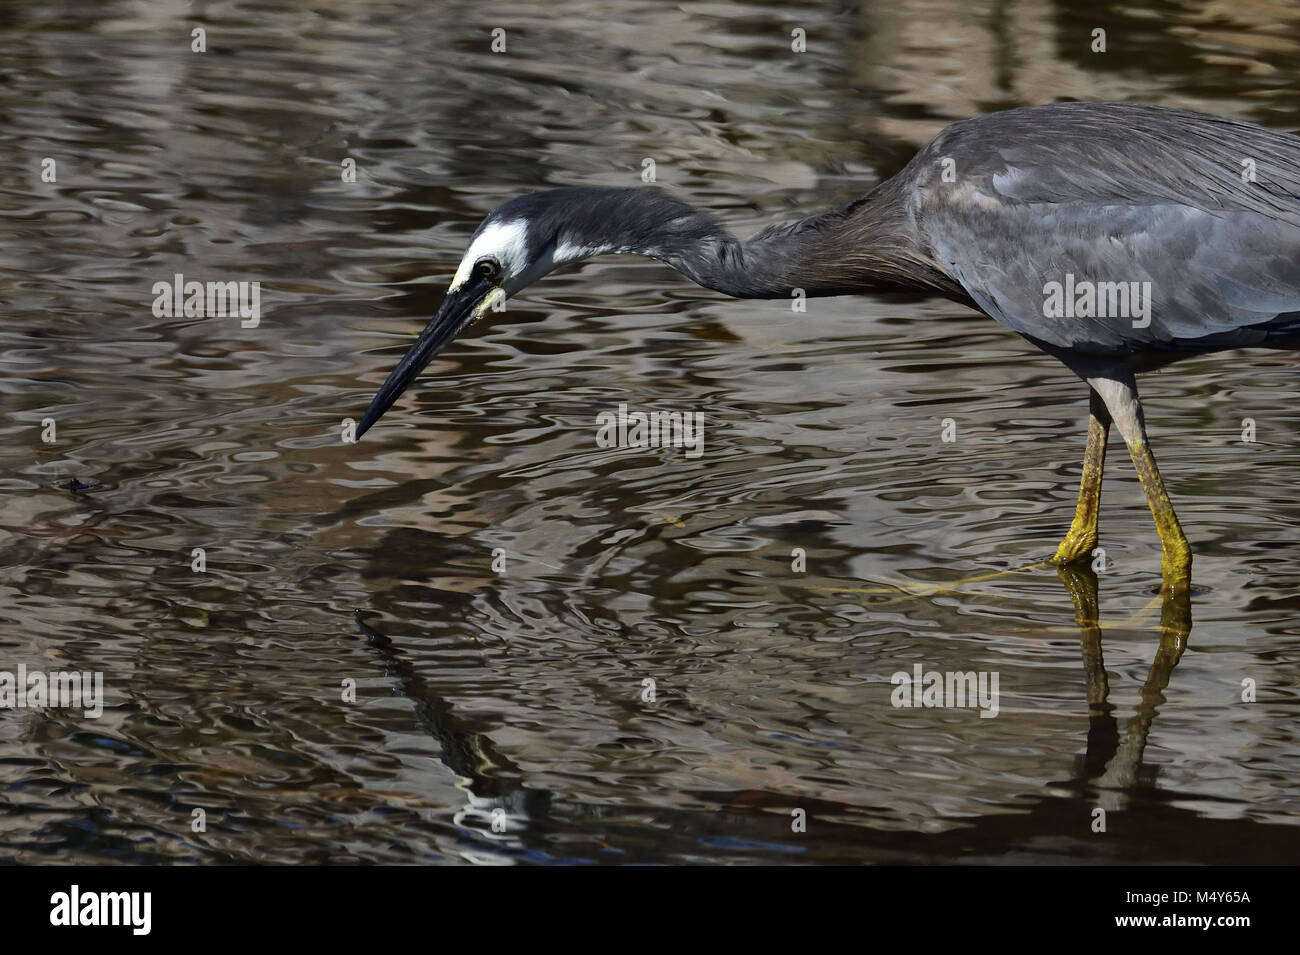 An Australian White-faced Heron looking for food in a Lagoon - Stock Image